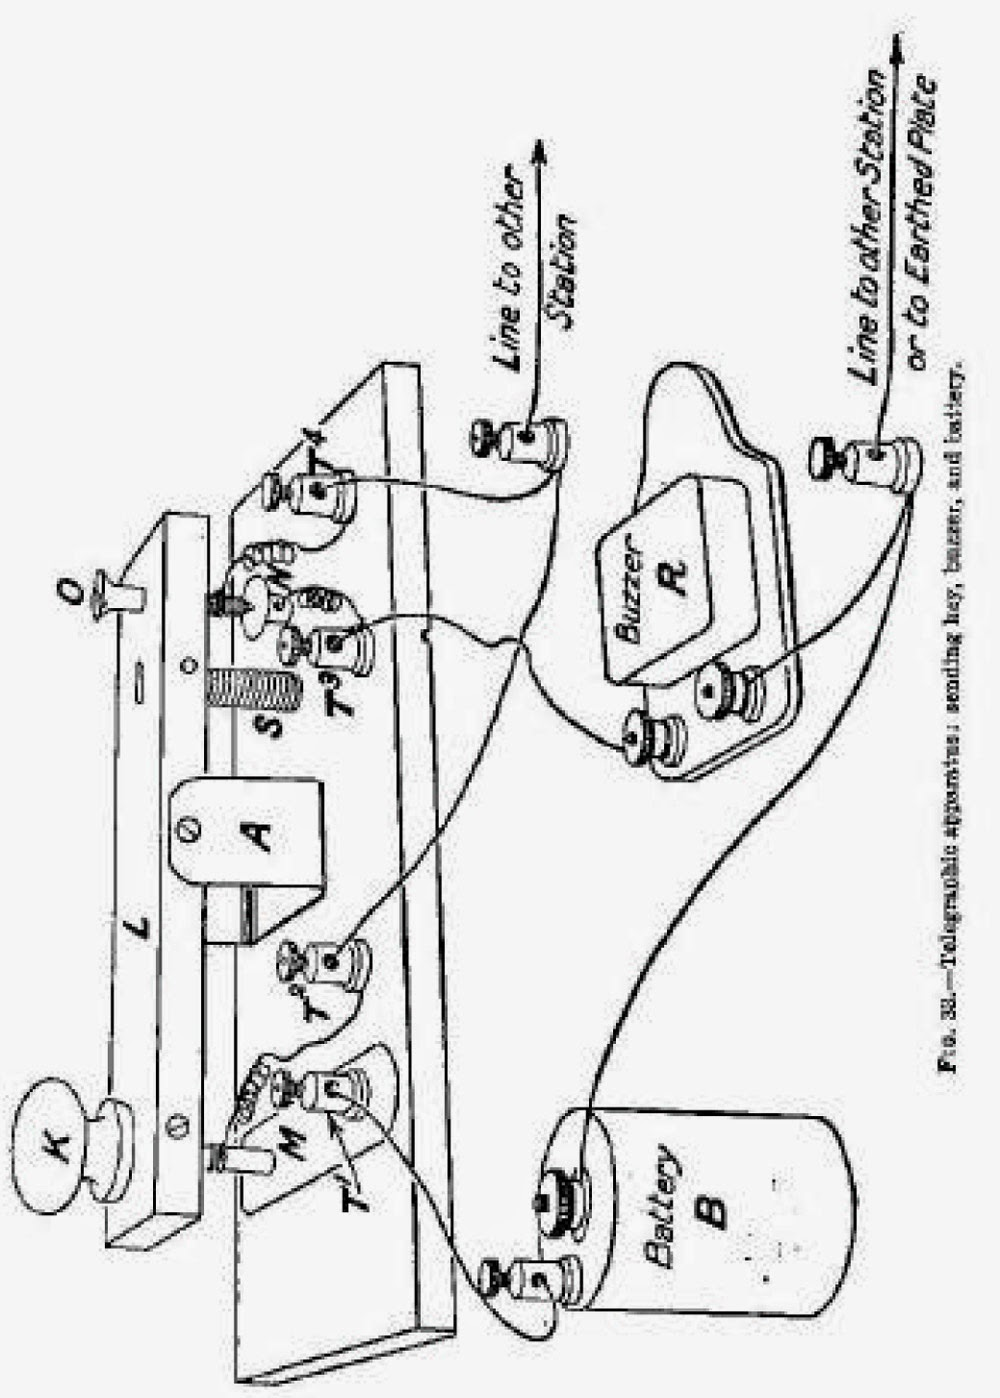 How To Make A Morse Code Generator Ency - Wiring diagram telegraph key